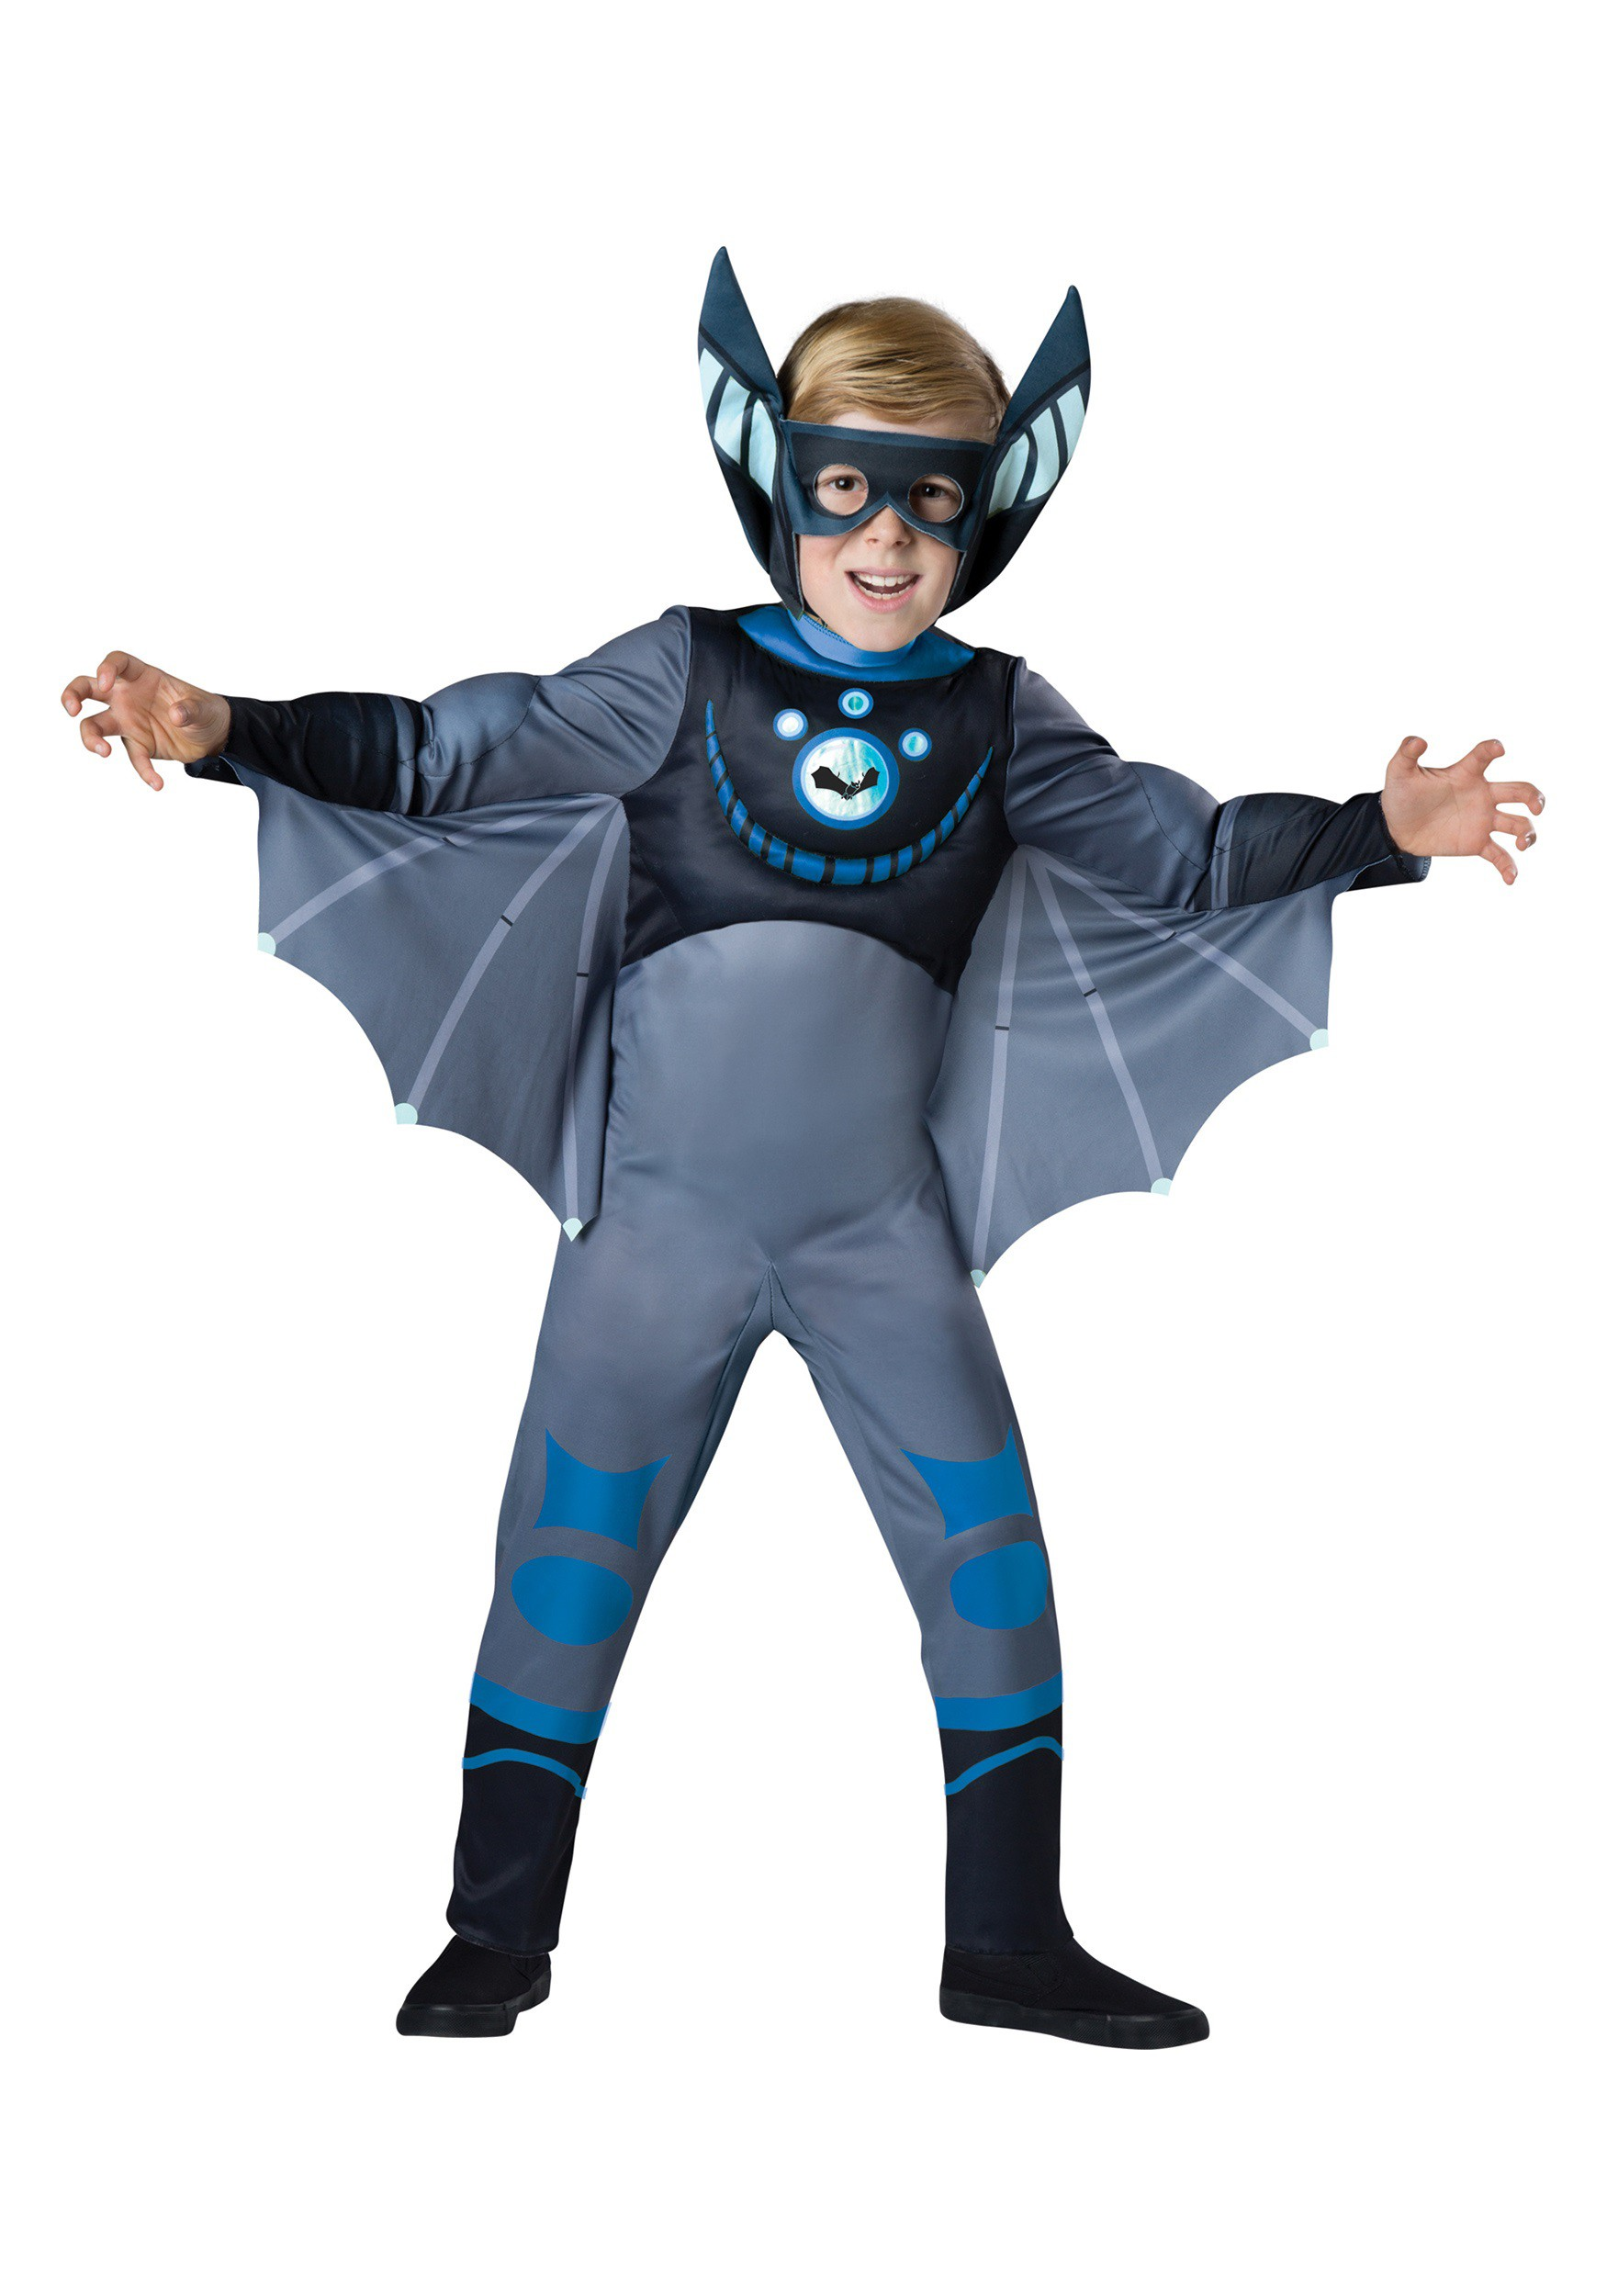 Halloween Kostüme Kinder Toys R Us Wild Kratts Blue Bat Costume